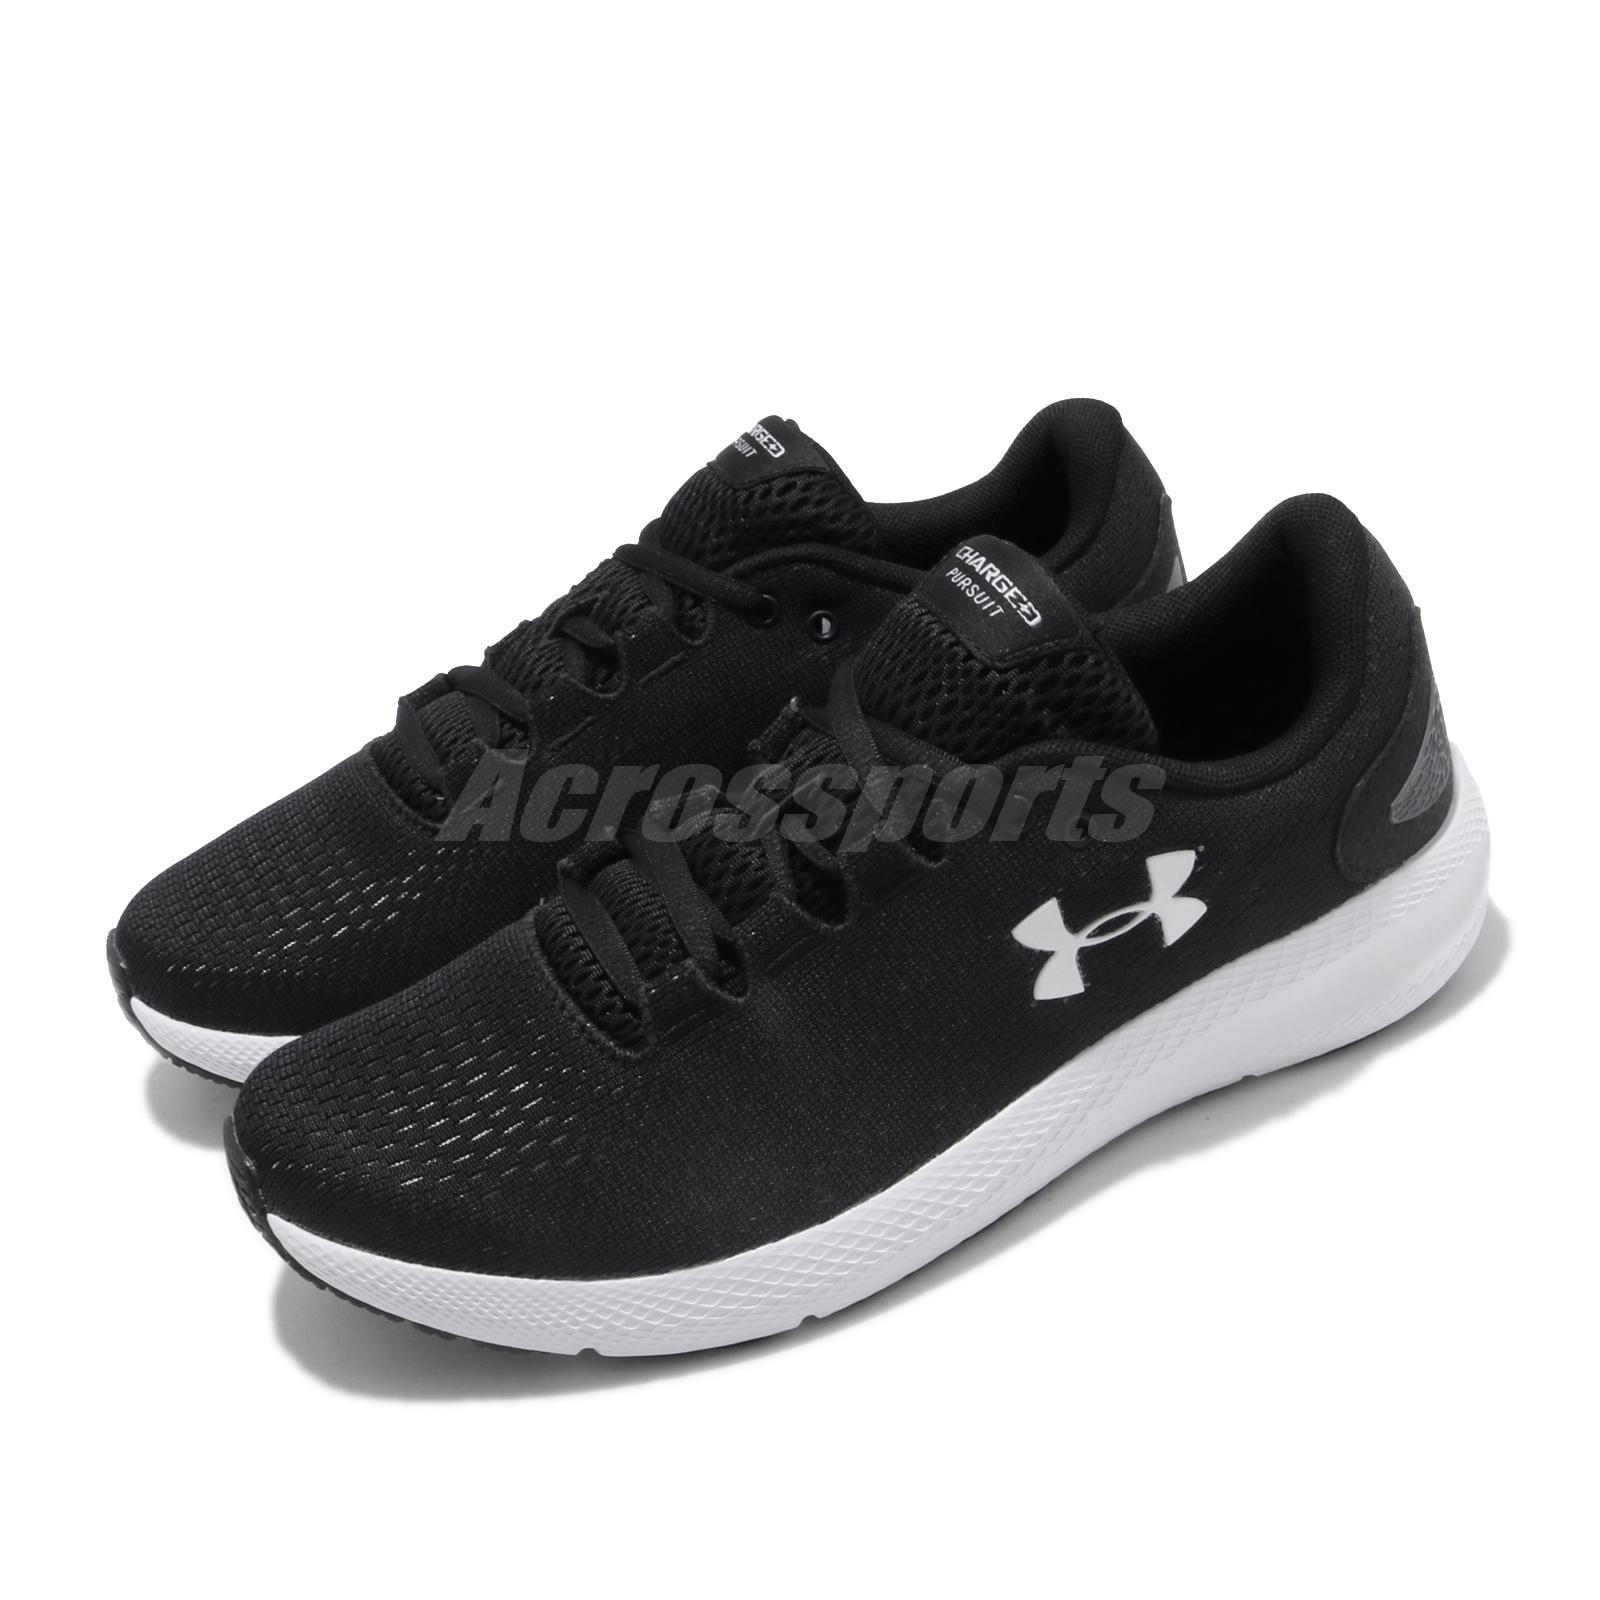 Women/'s UNDER ARMOUR CHARGED ROGUE 3021247-002 BLACK Lace Up Running Shoes